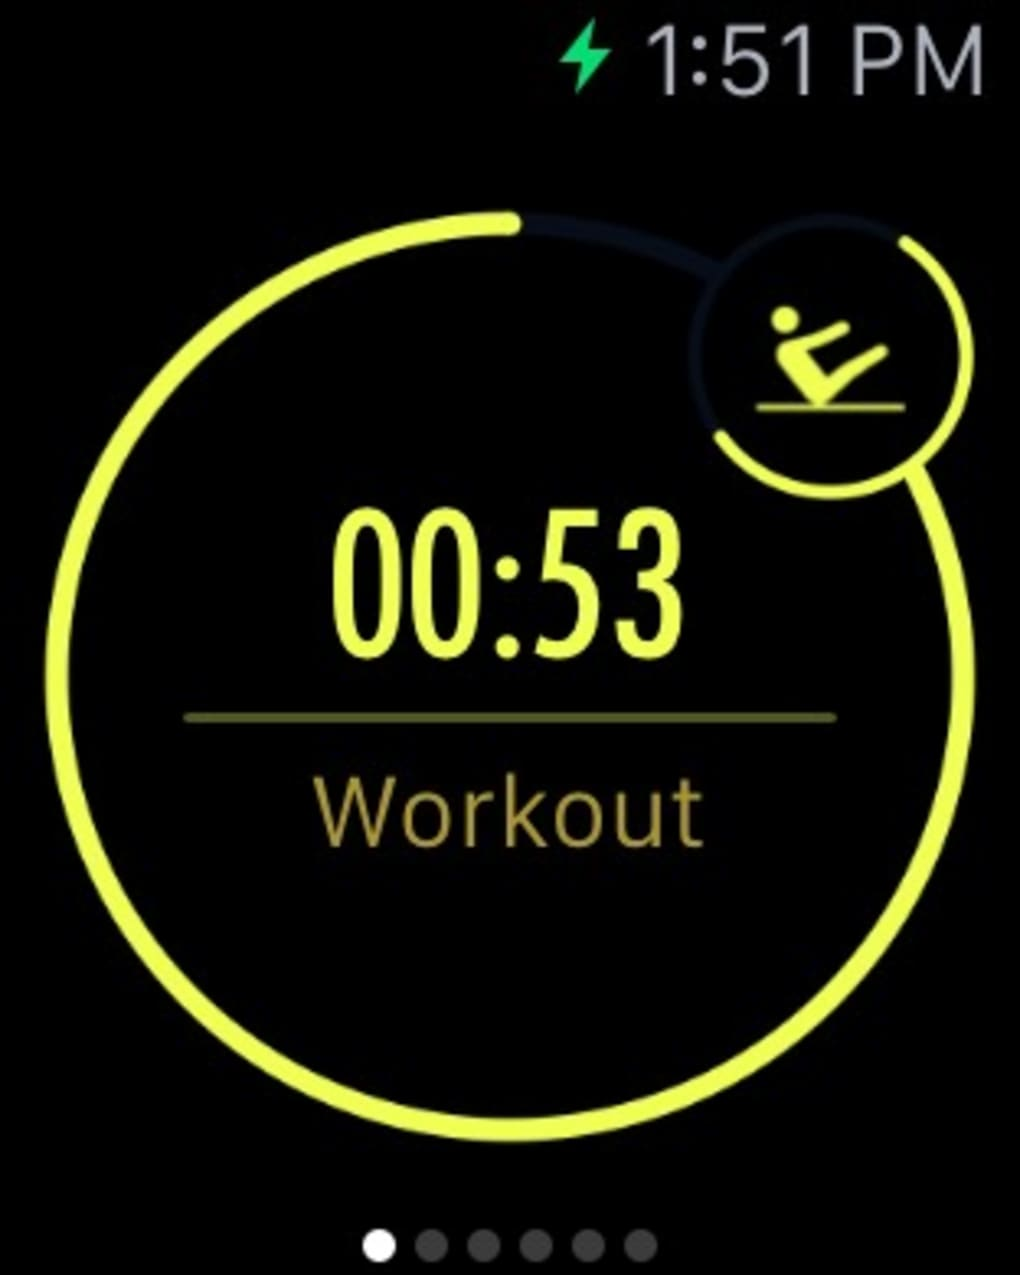 MultiTimer - Free Fast Multiple Countdown Timer for iPhone - Download